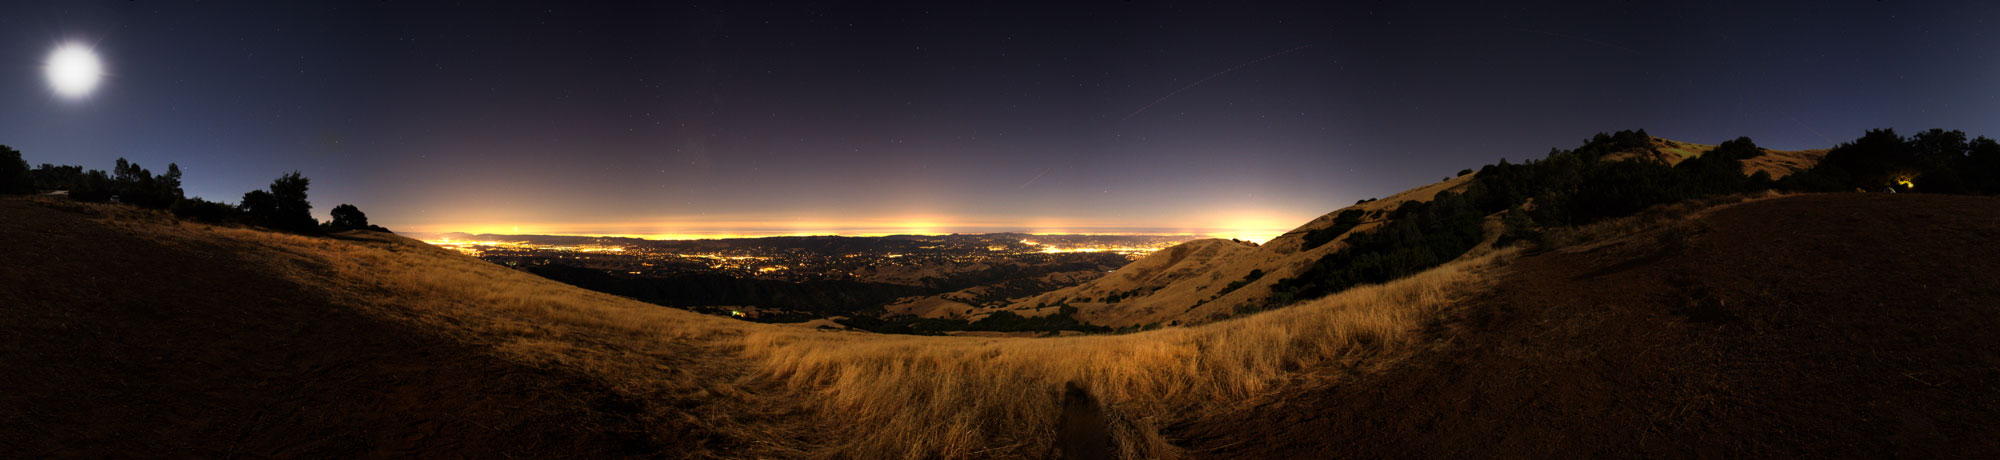 //franciscrossman.com/wp-content/uploads/2015/12/Mt_Diablo_Night_Pano_2000px_Night_Look.jpg